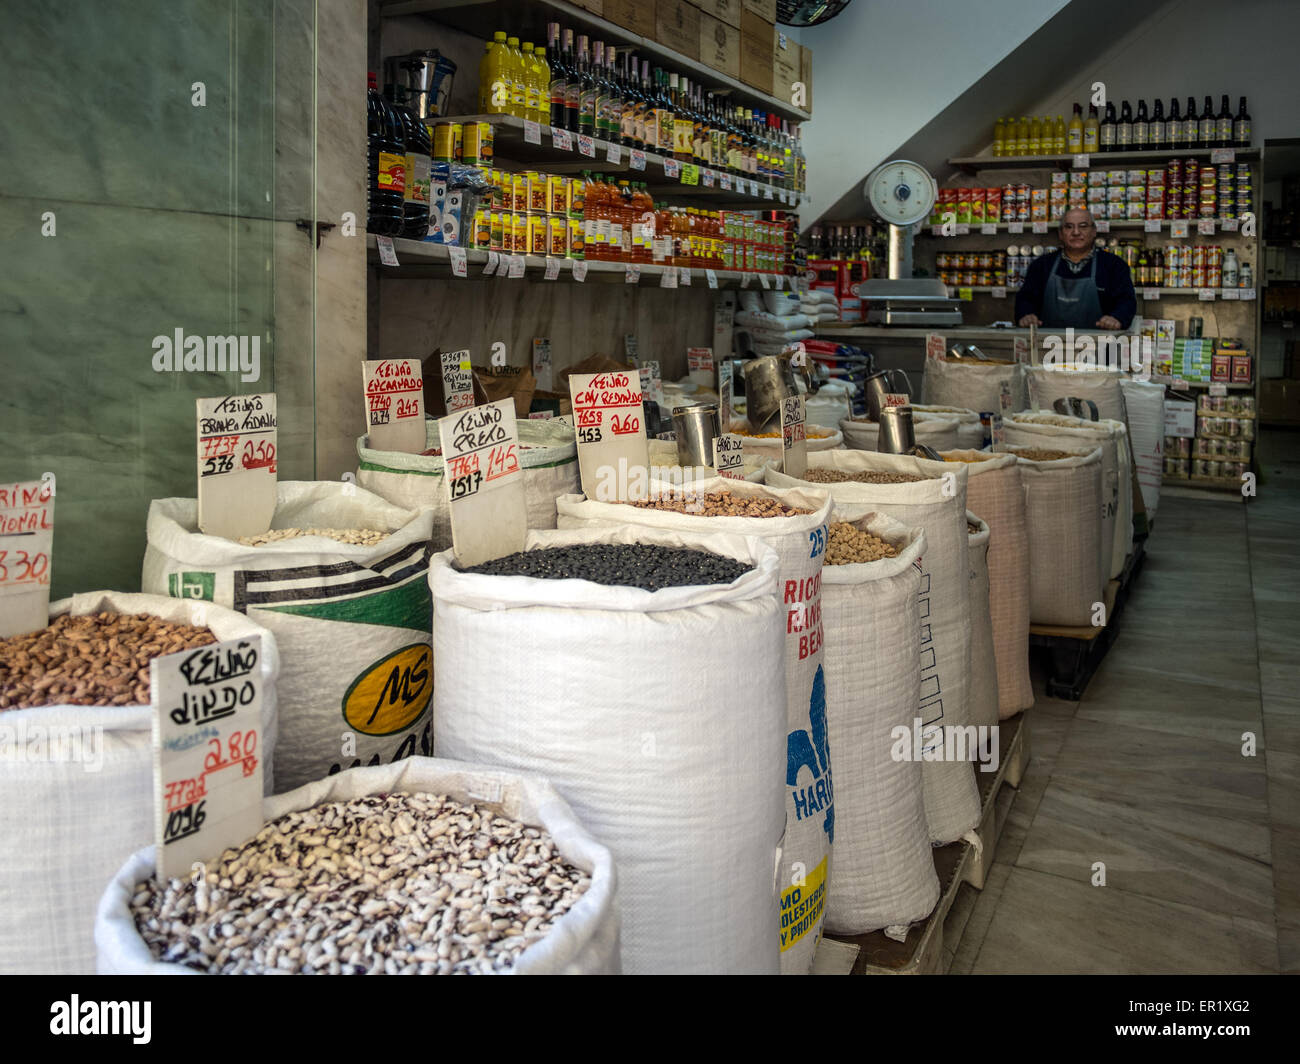 Beans in sacks in small delicatessen shop in Lisbon - Stock Image